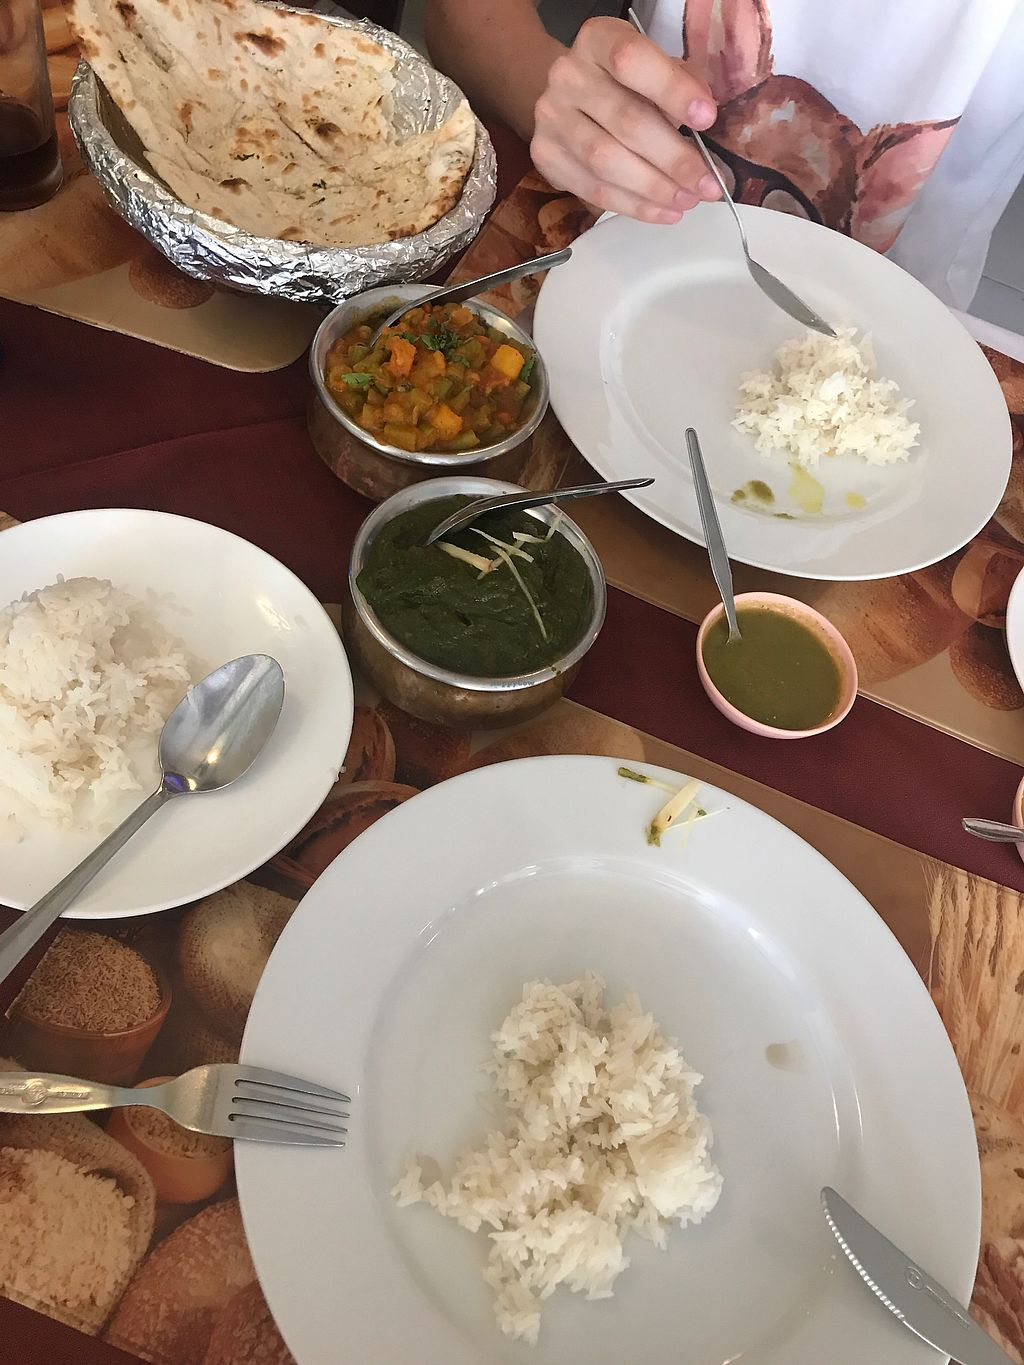 "Photo of Noori India  by <a href=""/members/profile/Saja1982"">Saja1982</a> <br/>mixed veggie curry and potato and spinachsauce  <br/> July 22, 2017  - <a href='/contact/abuse/image/76424/283142'>Report</a>"